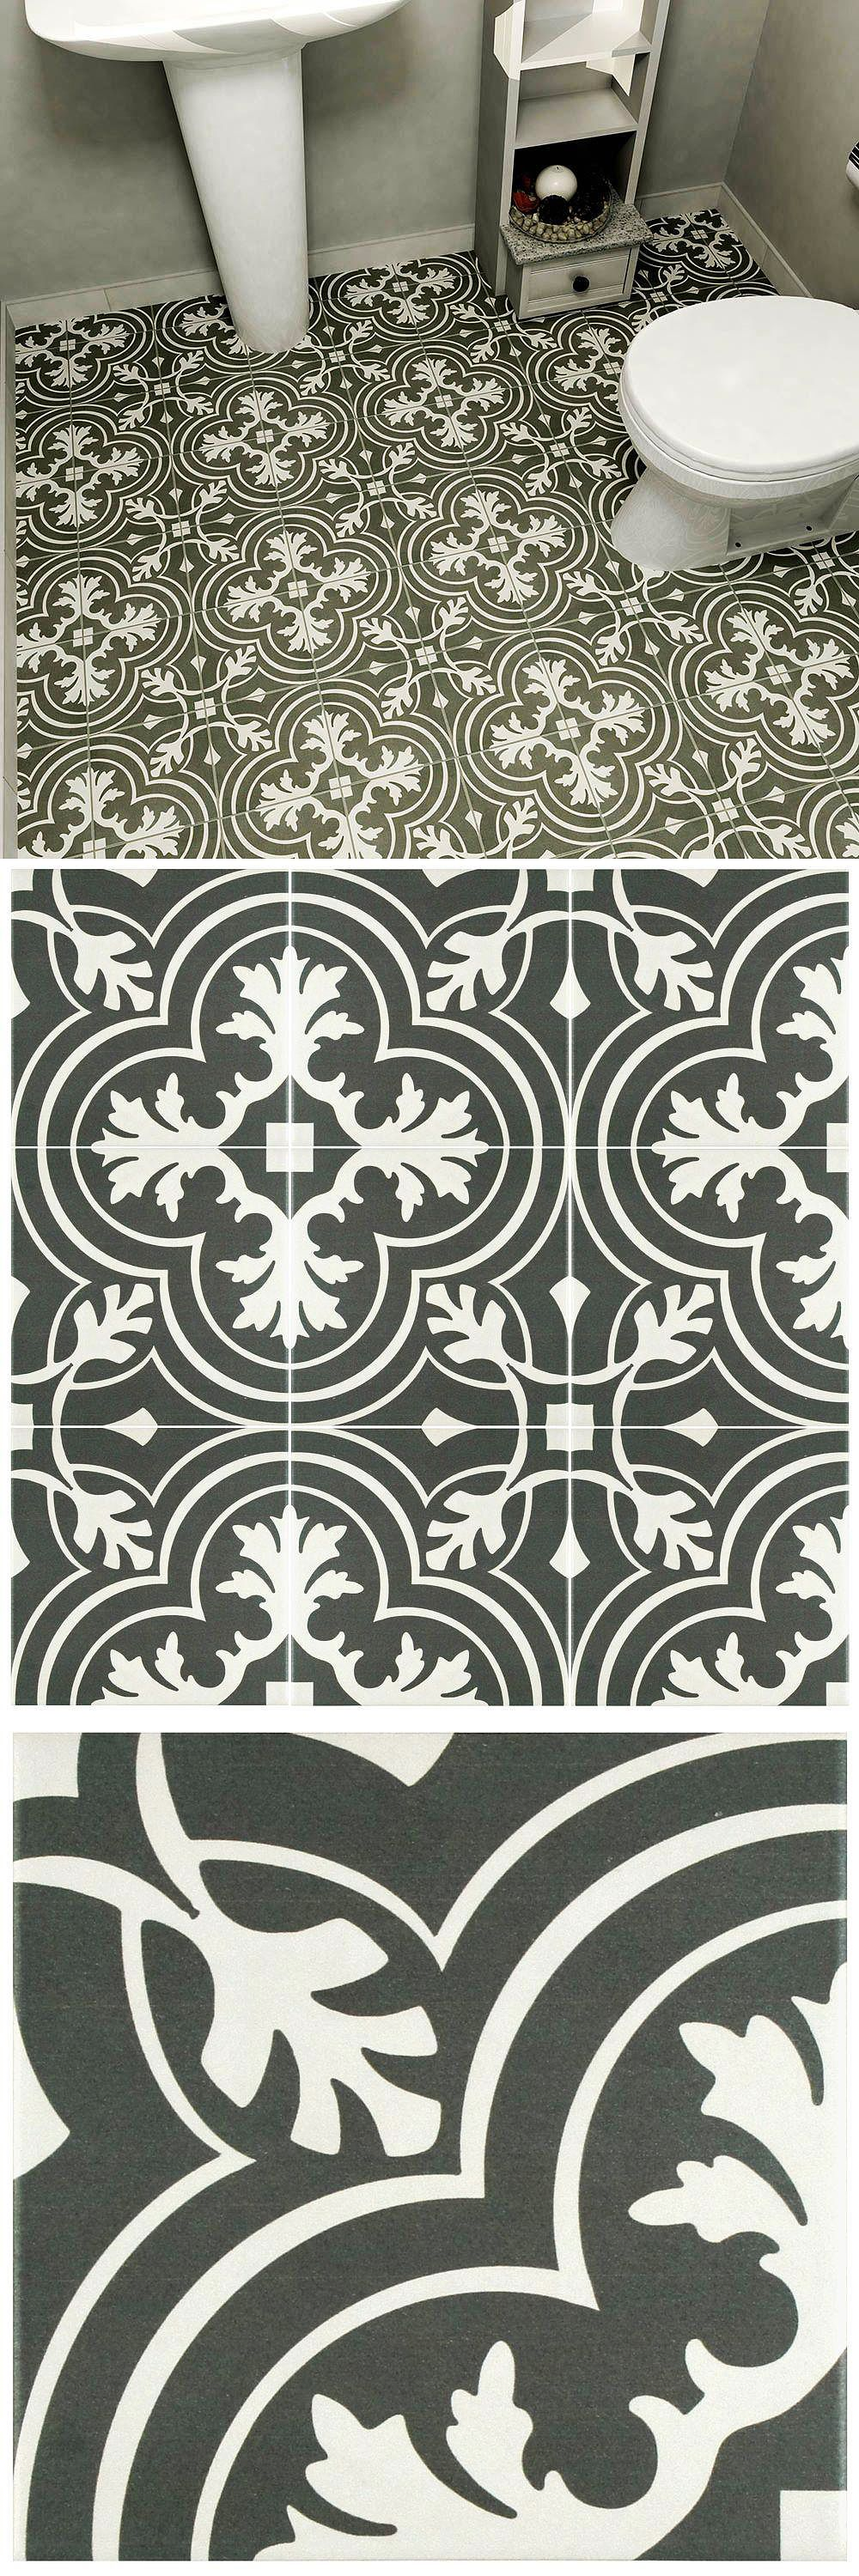 Merola Tile Twenties Classic Encaustic Ceramic Floor And Wall Tile 7 3 4 In X 7 3 4 In Tile